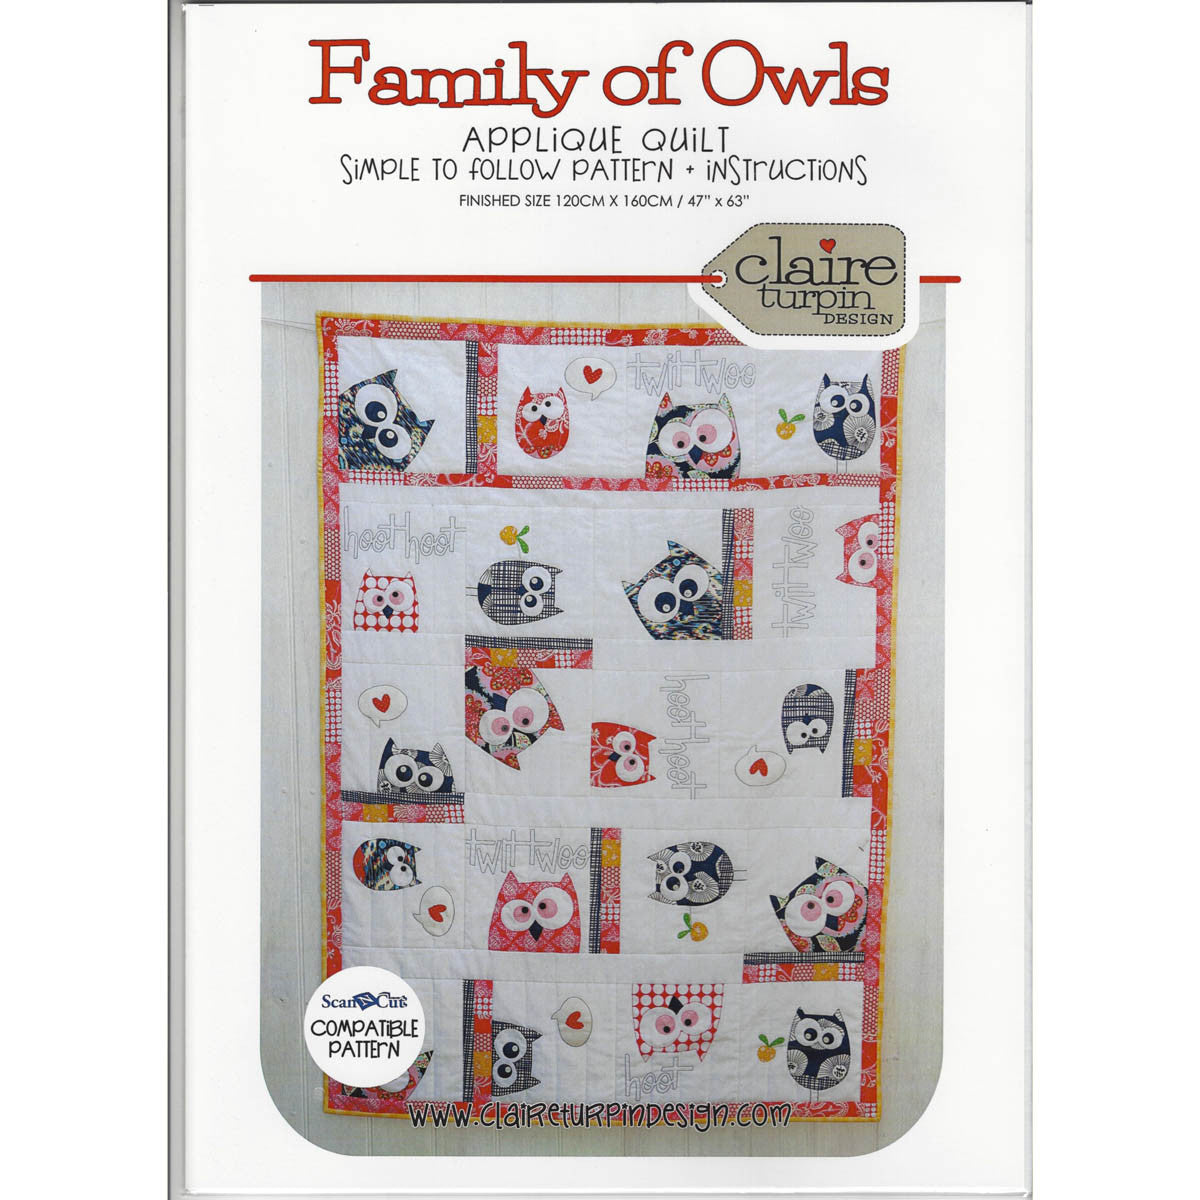 FAMILY OF OWLS - Quilt Pattern - Applique Quilt by Claire Turpin Design